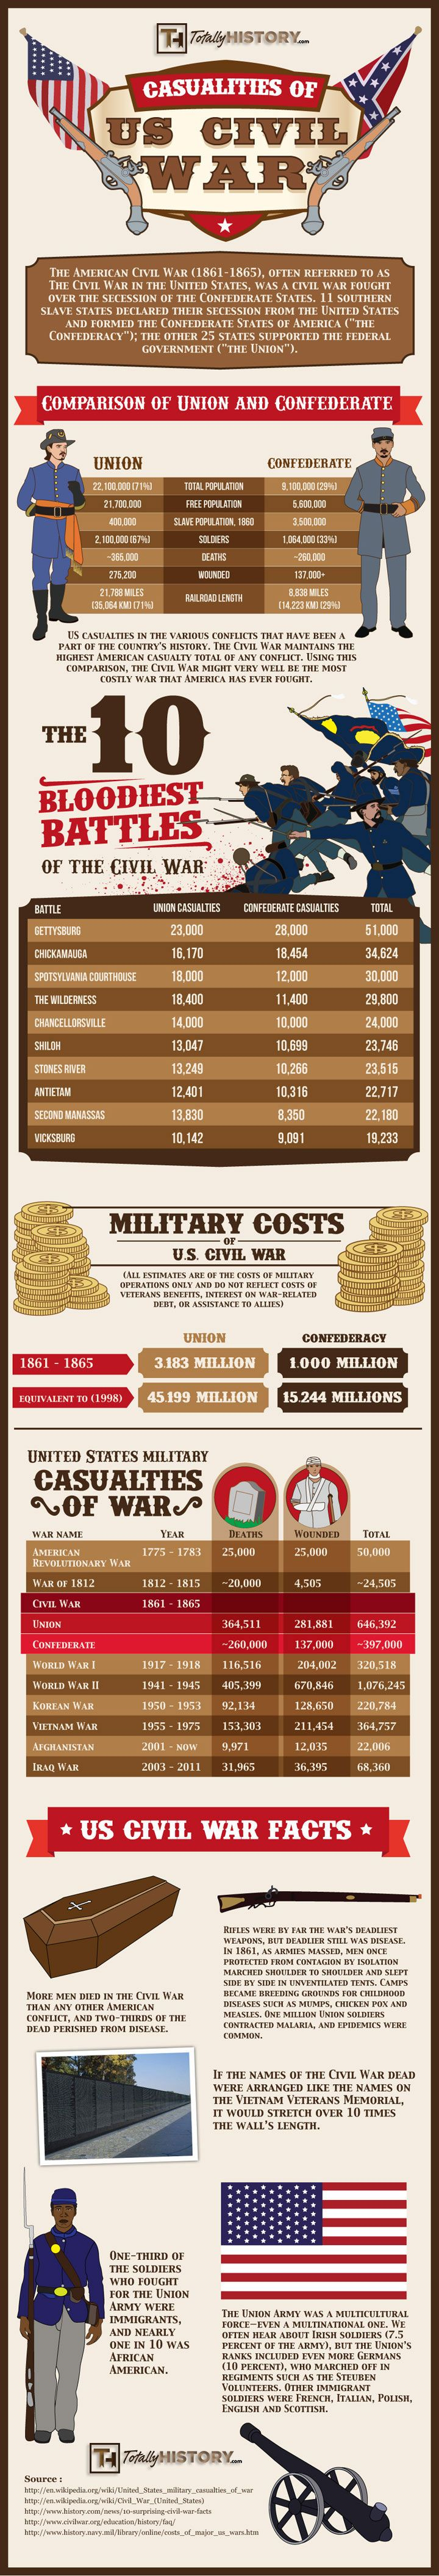 U.S. Civil War Casualties Statistics – Deaths Comparison of Battles